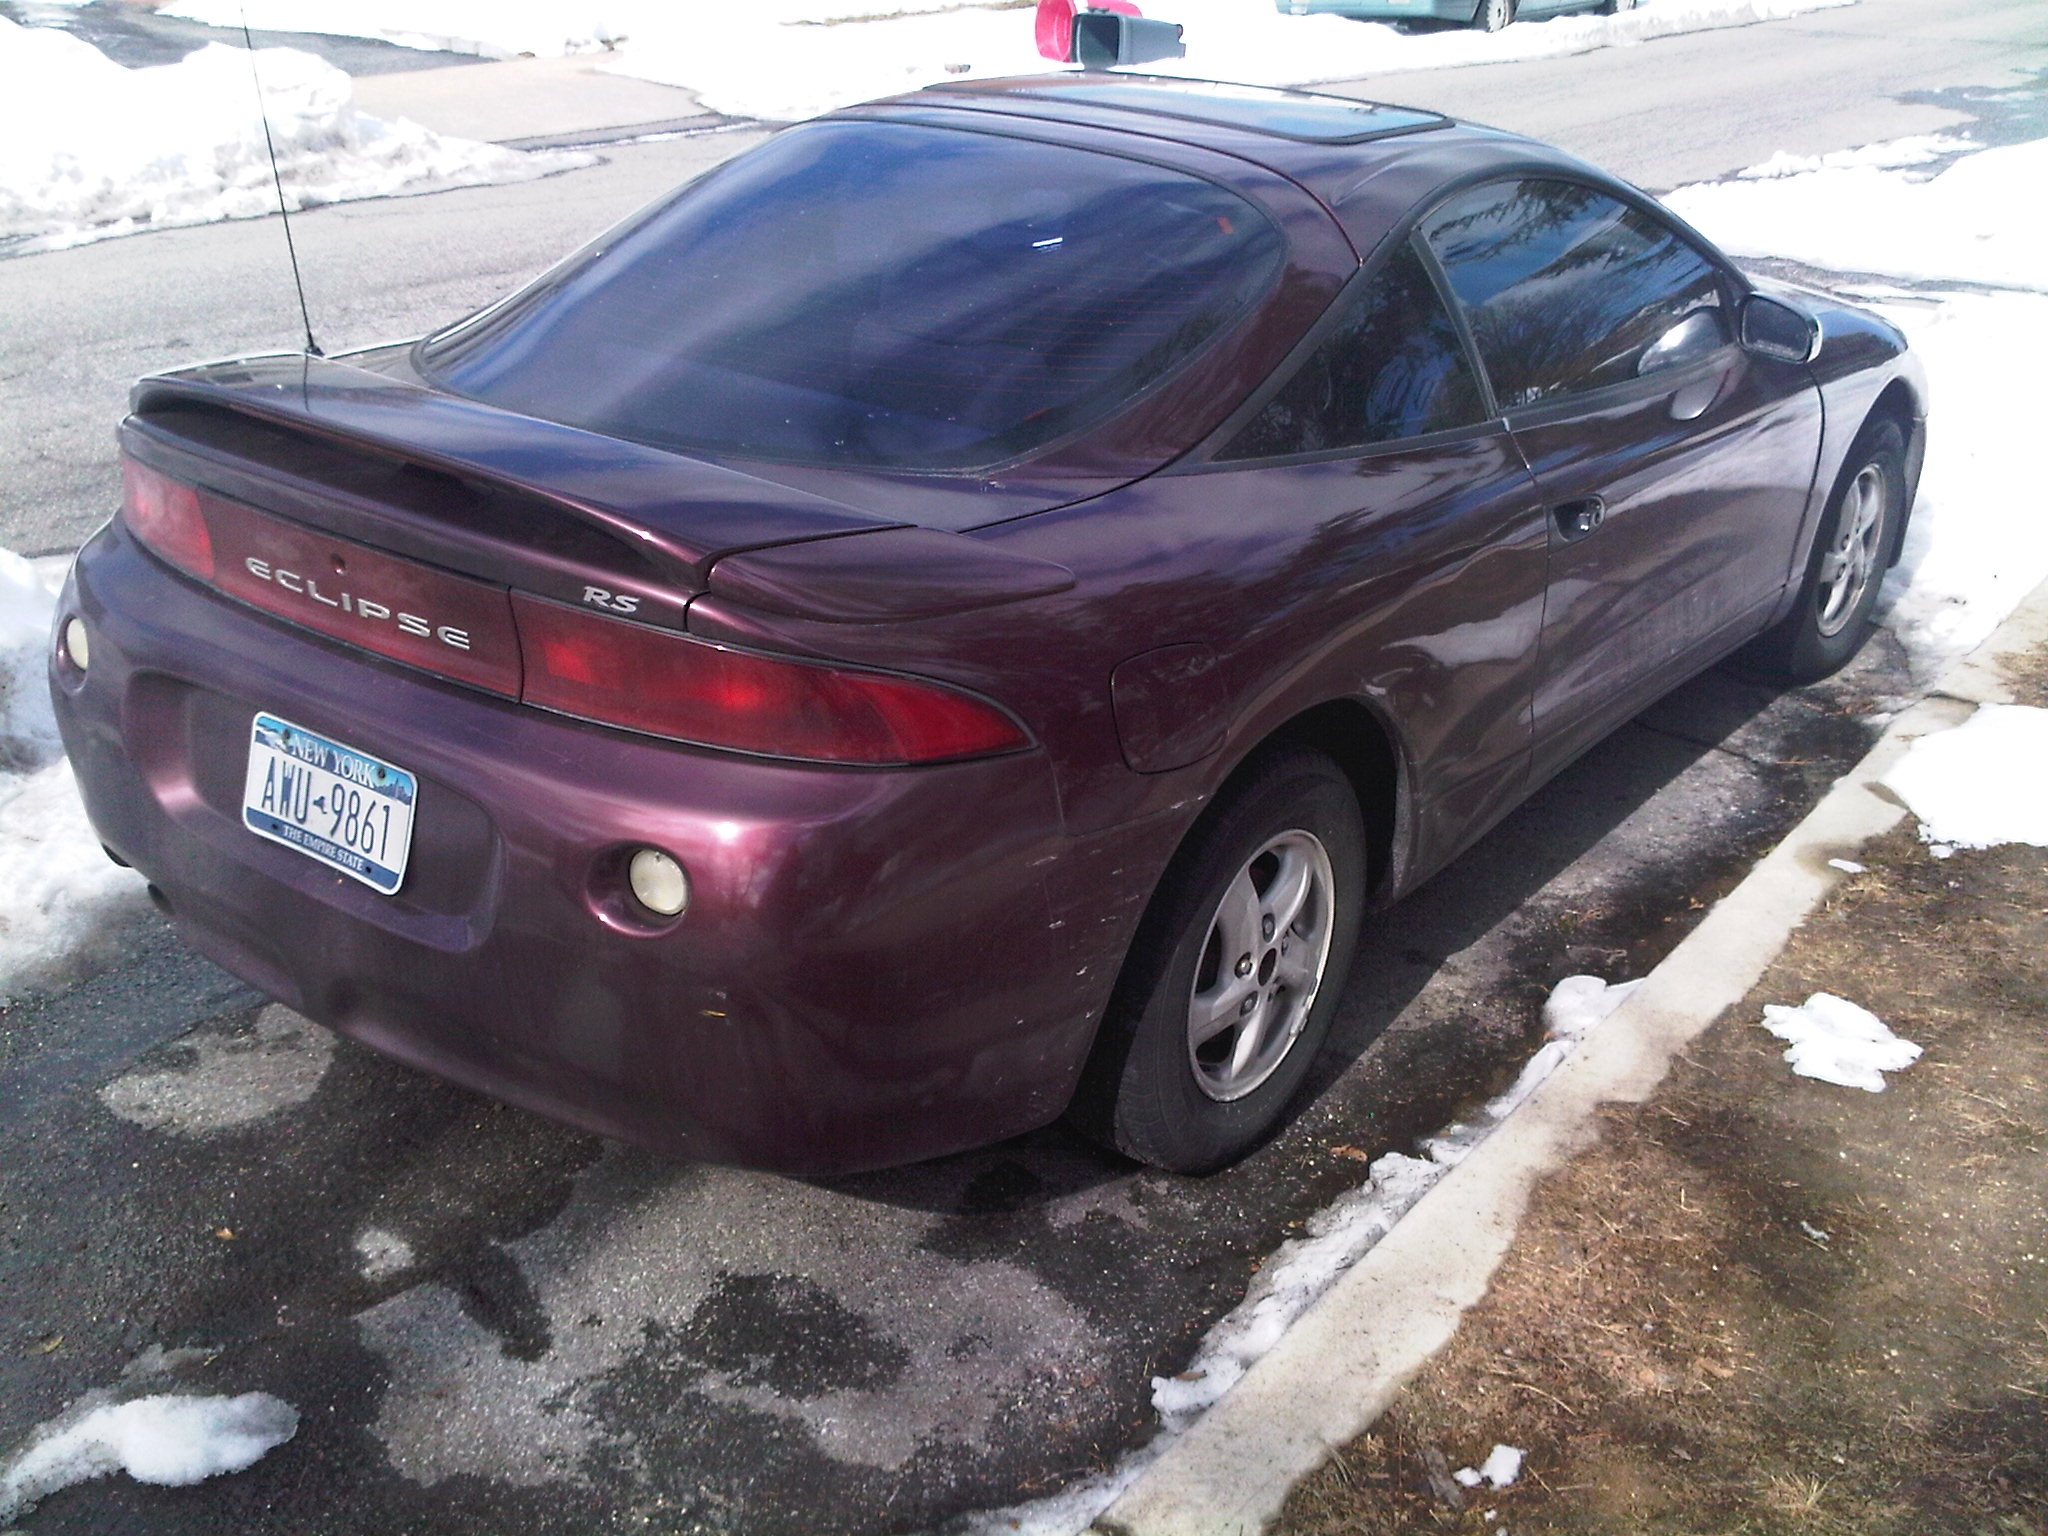 Mowogbobby 39 s 1998 mitsubishi eclipse in bellmore ny for 1998 mitsubishi eclipse motor